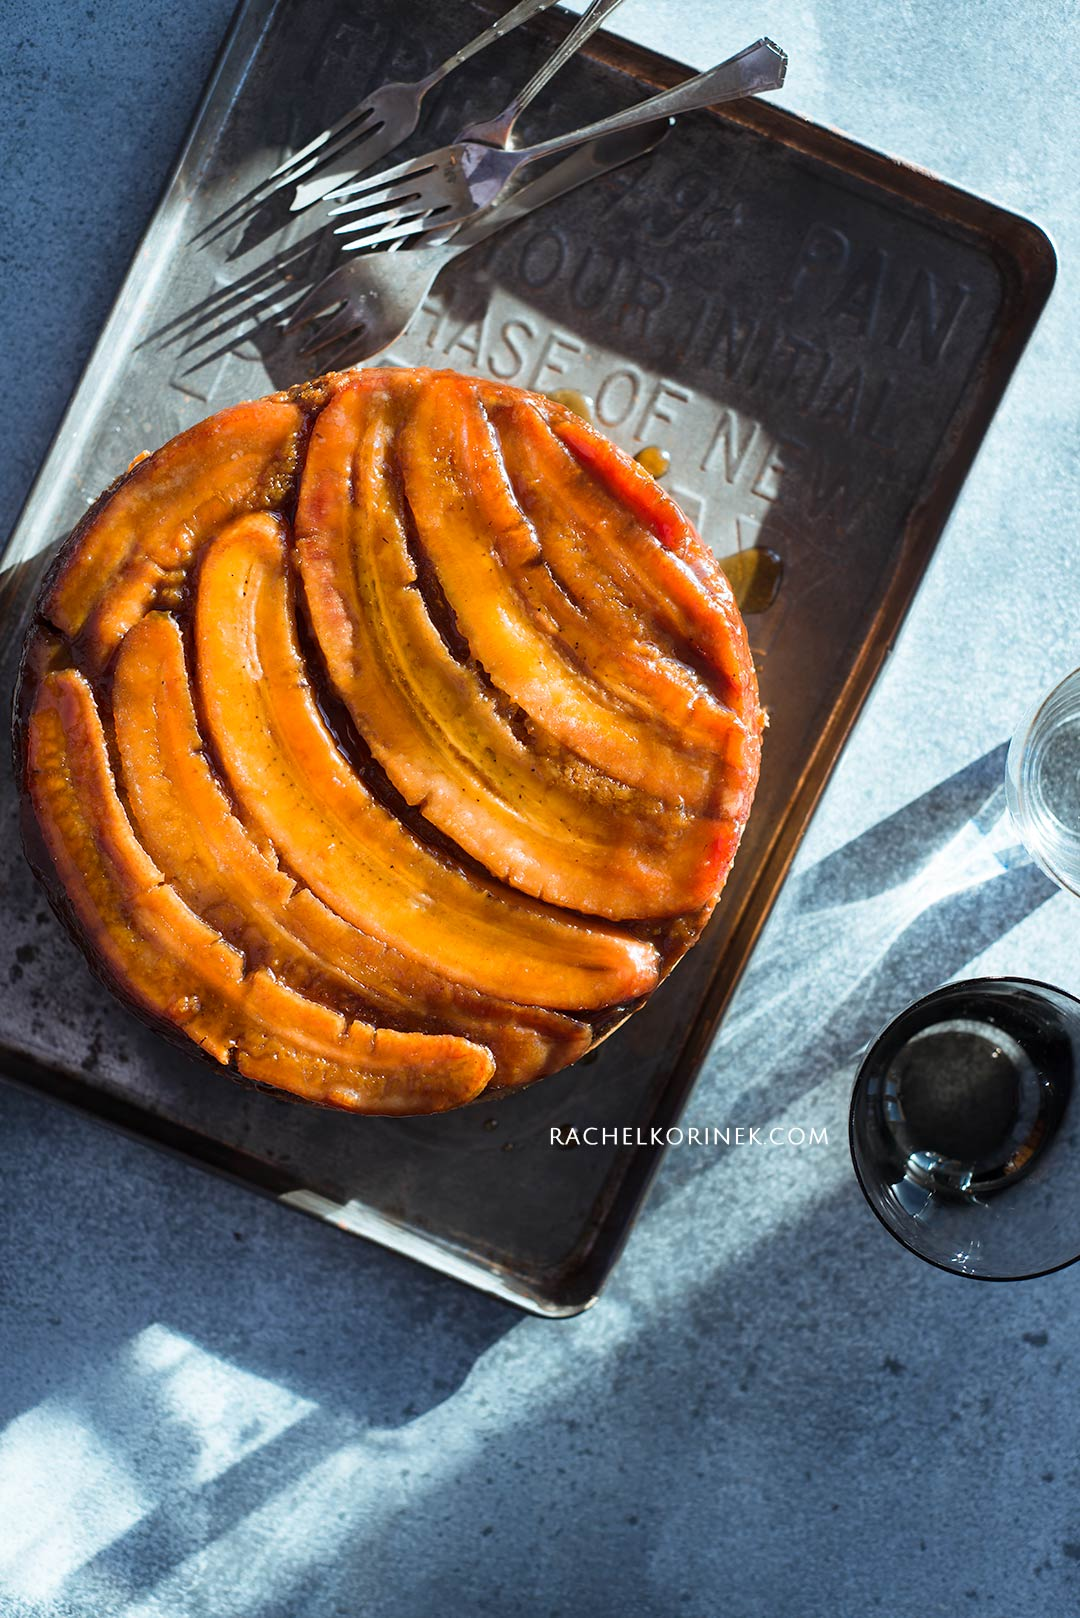 Upside Down Banana Cake Food Photography | Rachel Korinek  Click to check out my latest food photography projects.  #twolovesstudio #beautifulcuisine #foodbloggerpro #foodphotography #learnfoodphotography #foodblogger #learnphotography #foodstyling #lightingtips #naturallight #foodphotographer